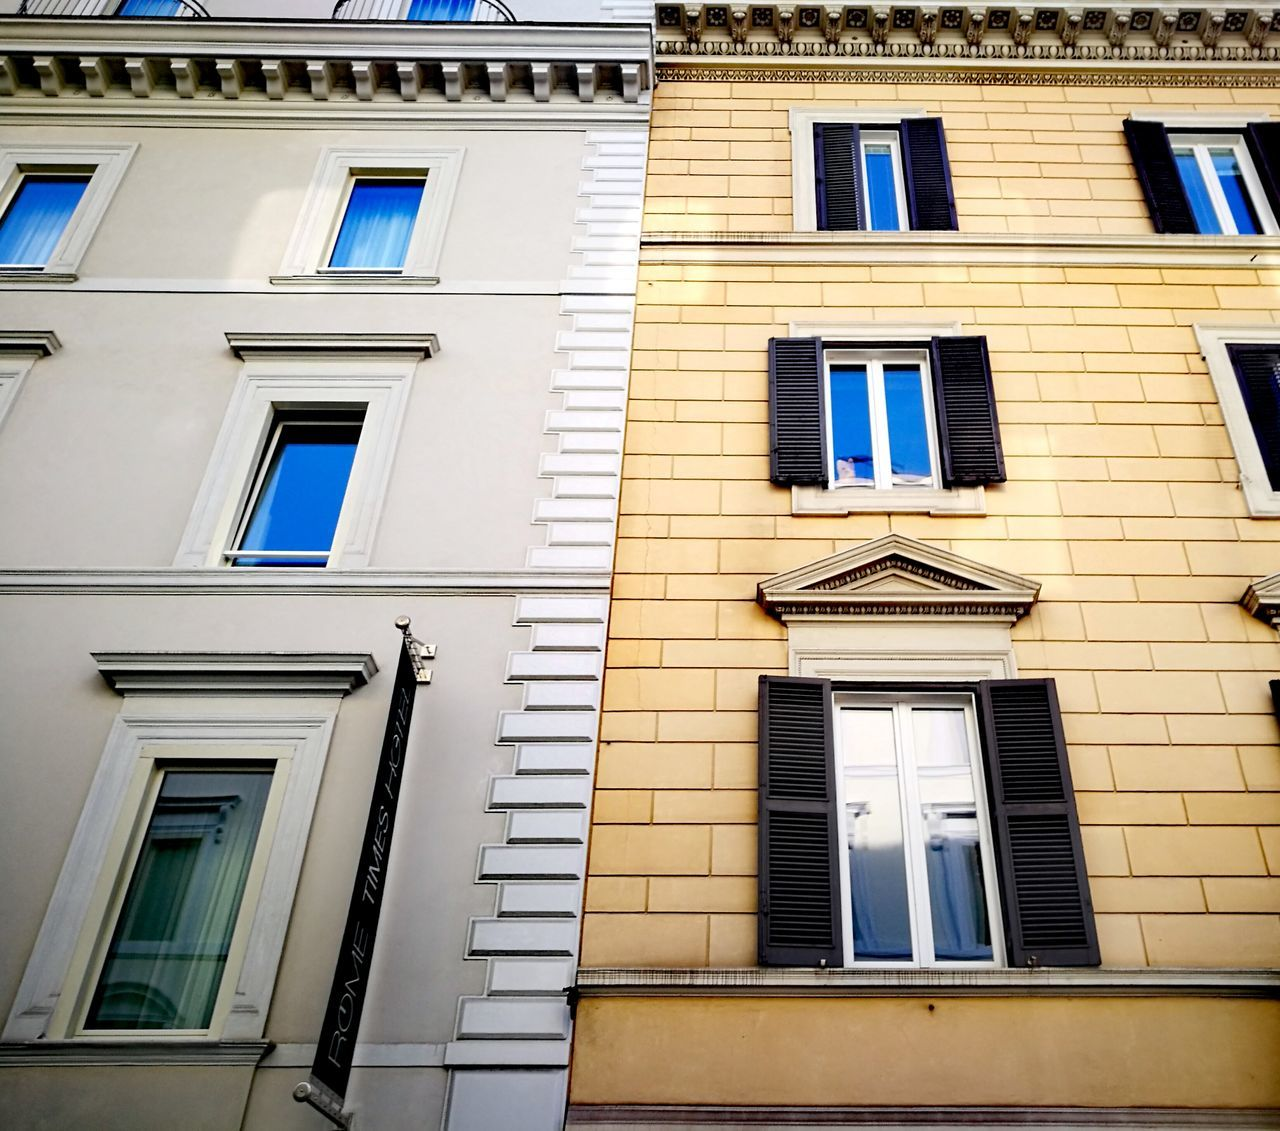 Window Architecture Building Exterior Outdoors Low Angle View No People Built Structure Balcony Day Windows Blue Sky Rome, Italy Rome Italy🇮🇹 The Week On Eyem Cloud - Sky Façade Low Angle View Architecture Visiting Rome Travel Destinations City Architecture_collection Different But Close Welcome To Black